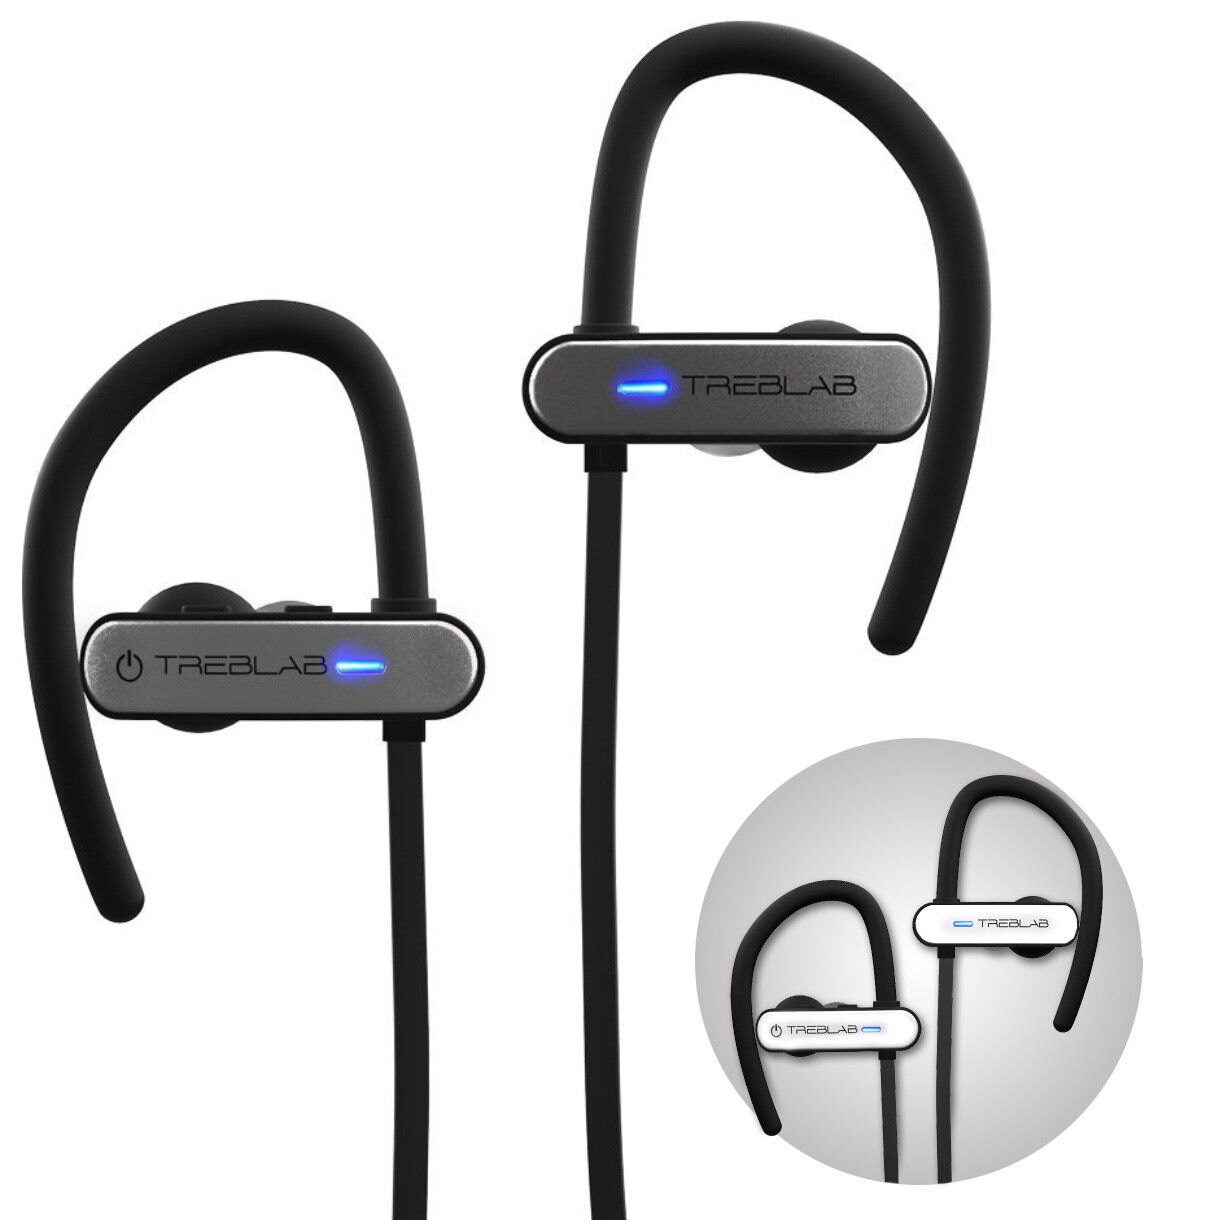 b1cb6ef4dc1 TREBLAB XR800 Bluetooth Headphones, Best Wireless Earbuds For Sports,  Running Or Gym Workouts.